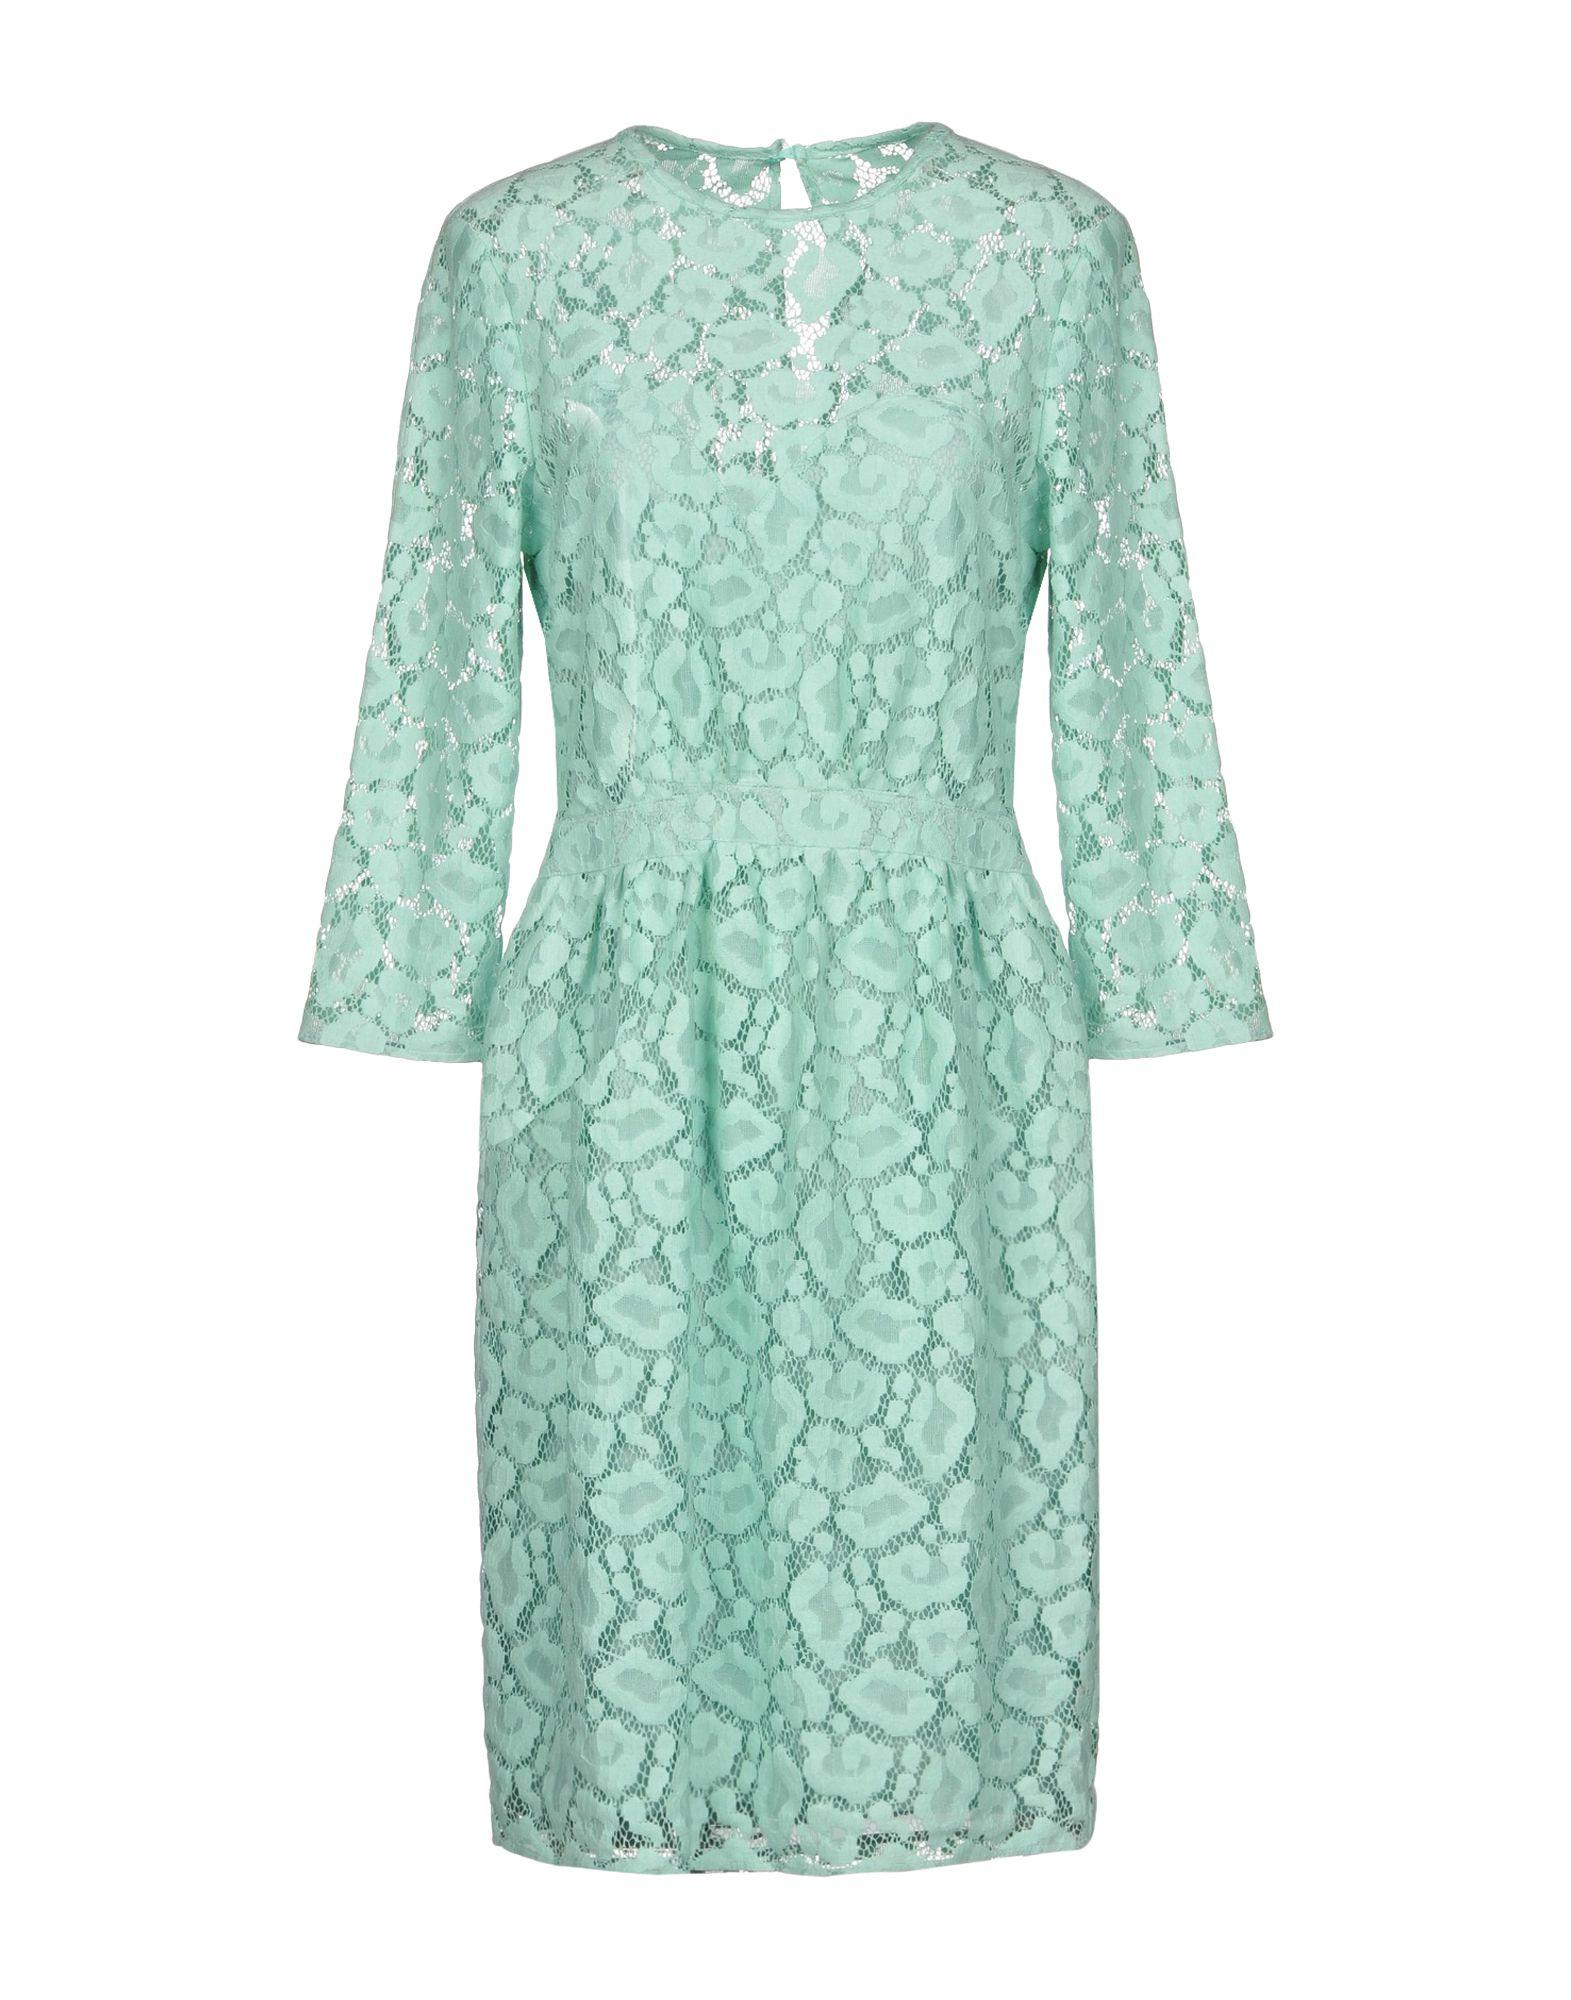 Moschino Cheap And Chic Short Dress In Light Green